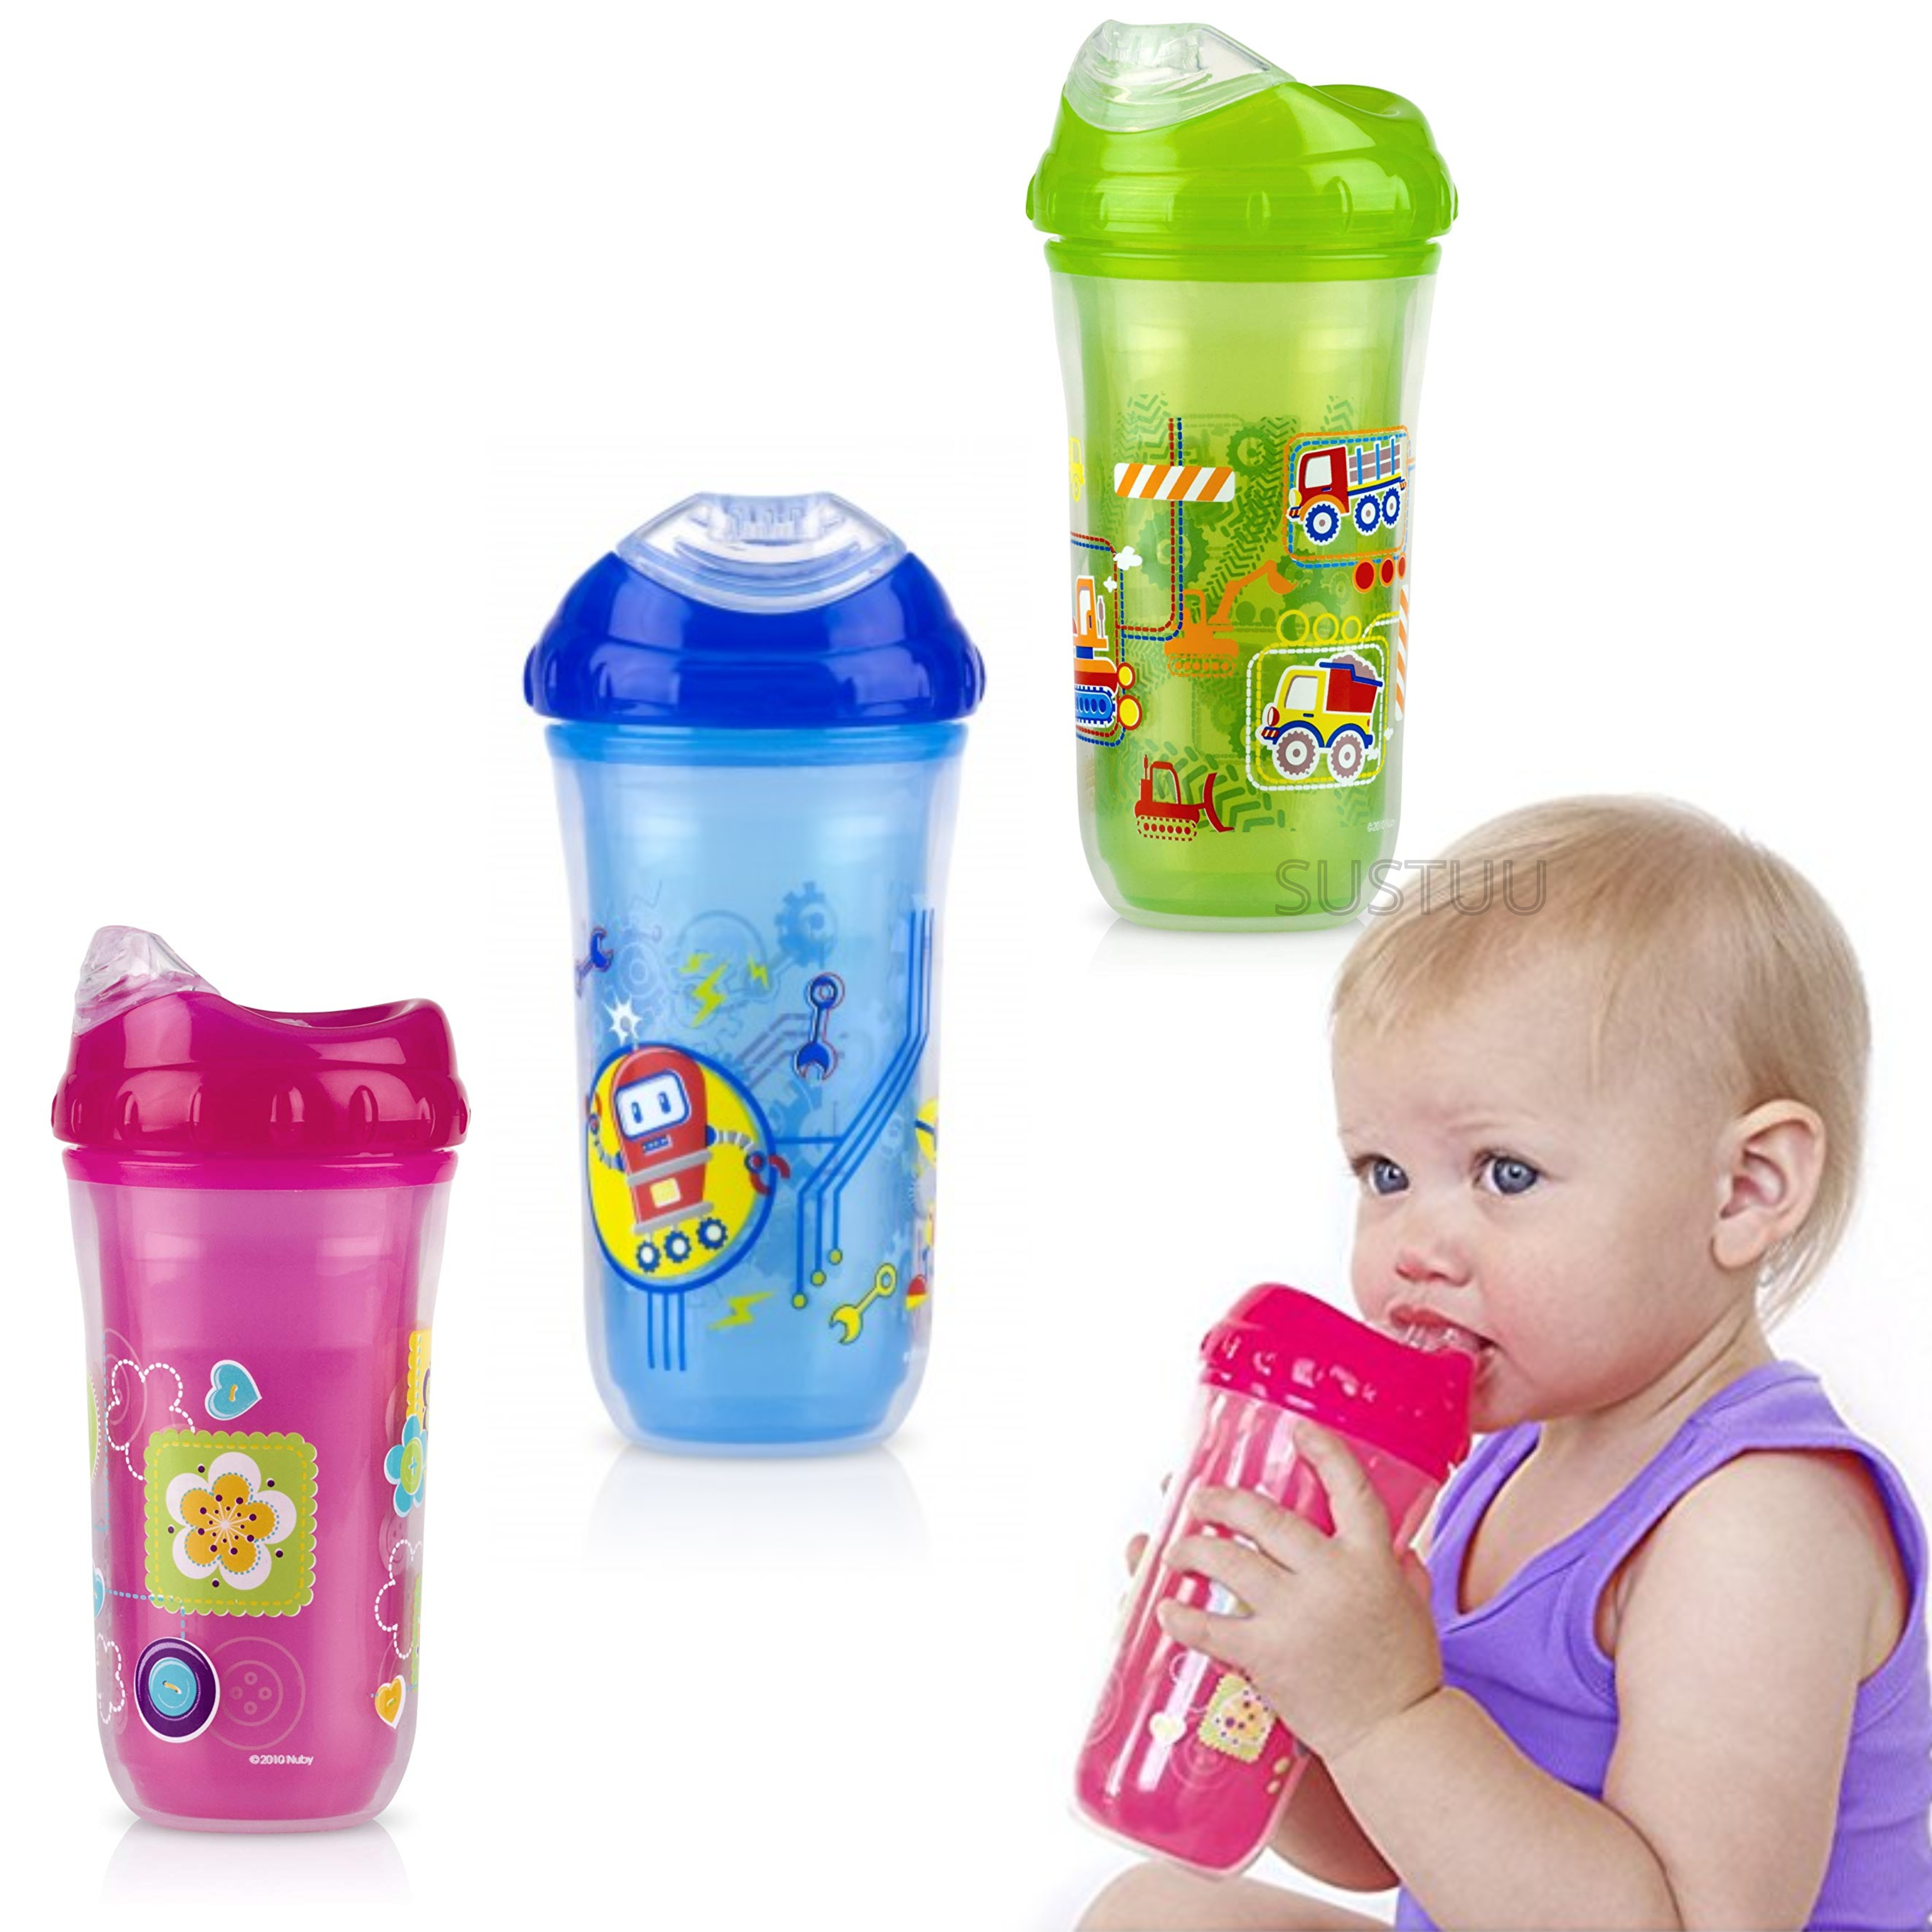 Nuby Insulated Cool Sipper | Toddlers' Cup | Kid's Drinking Container | Beaker | 18m+